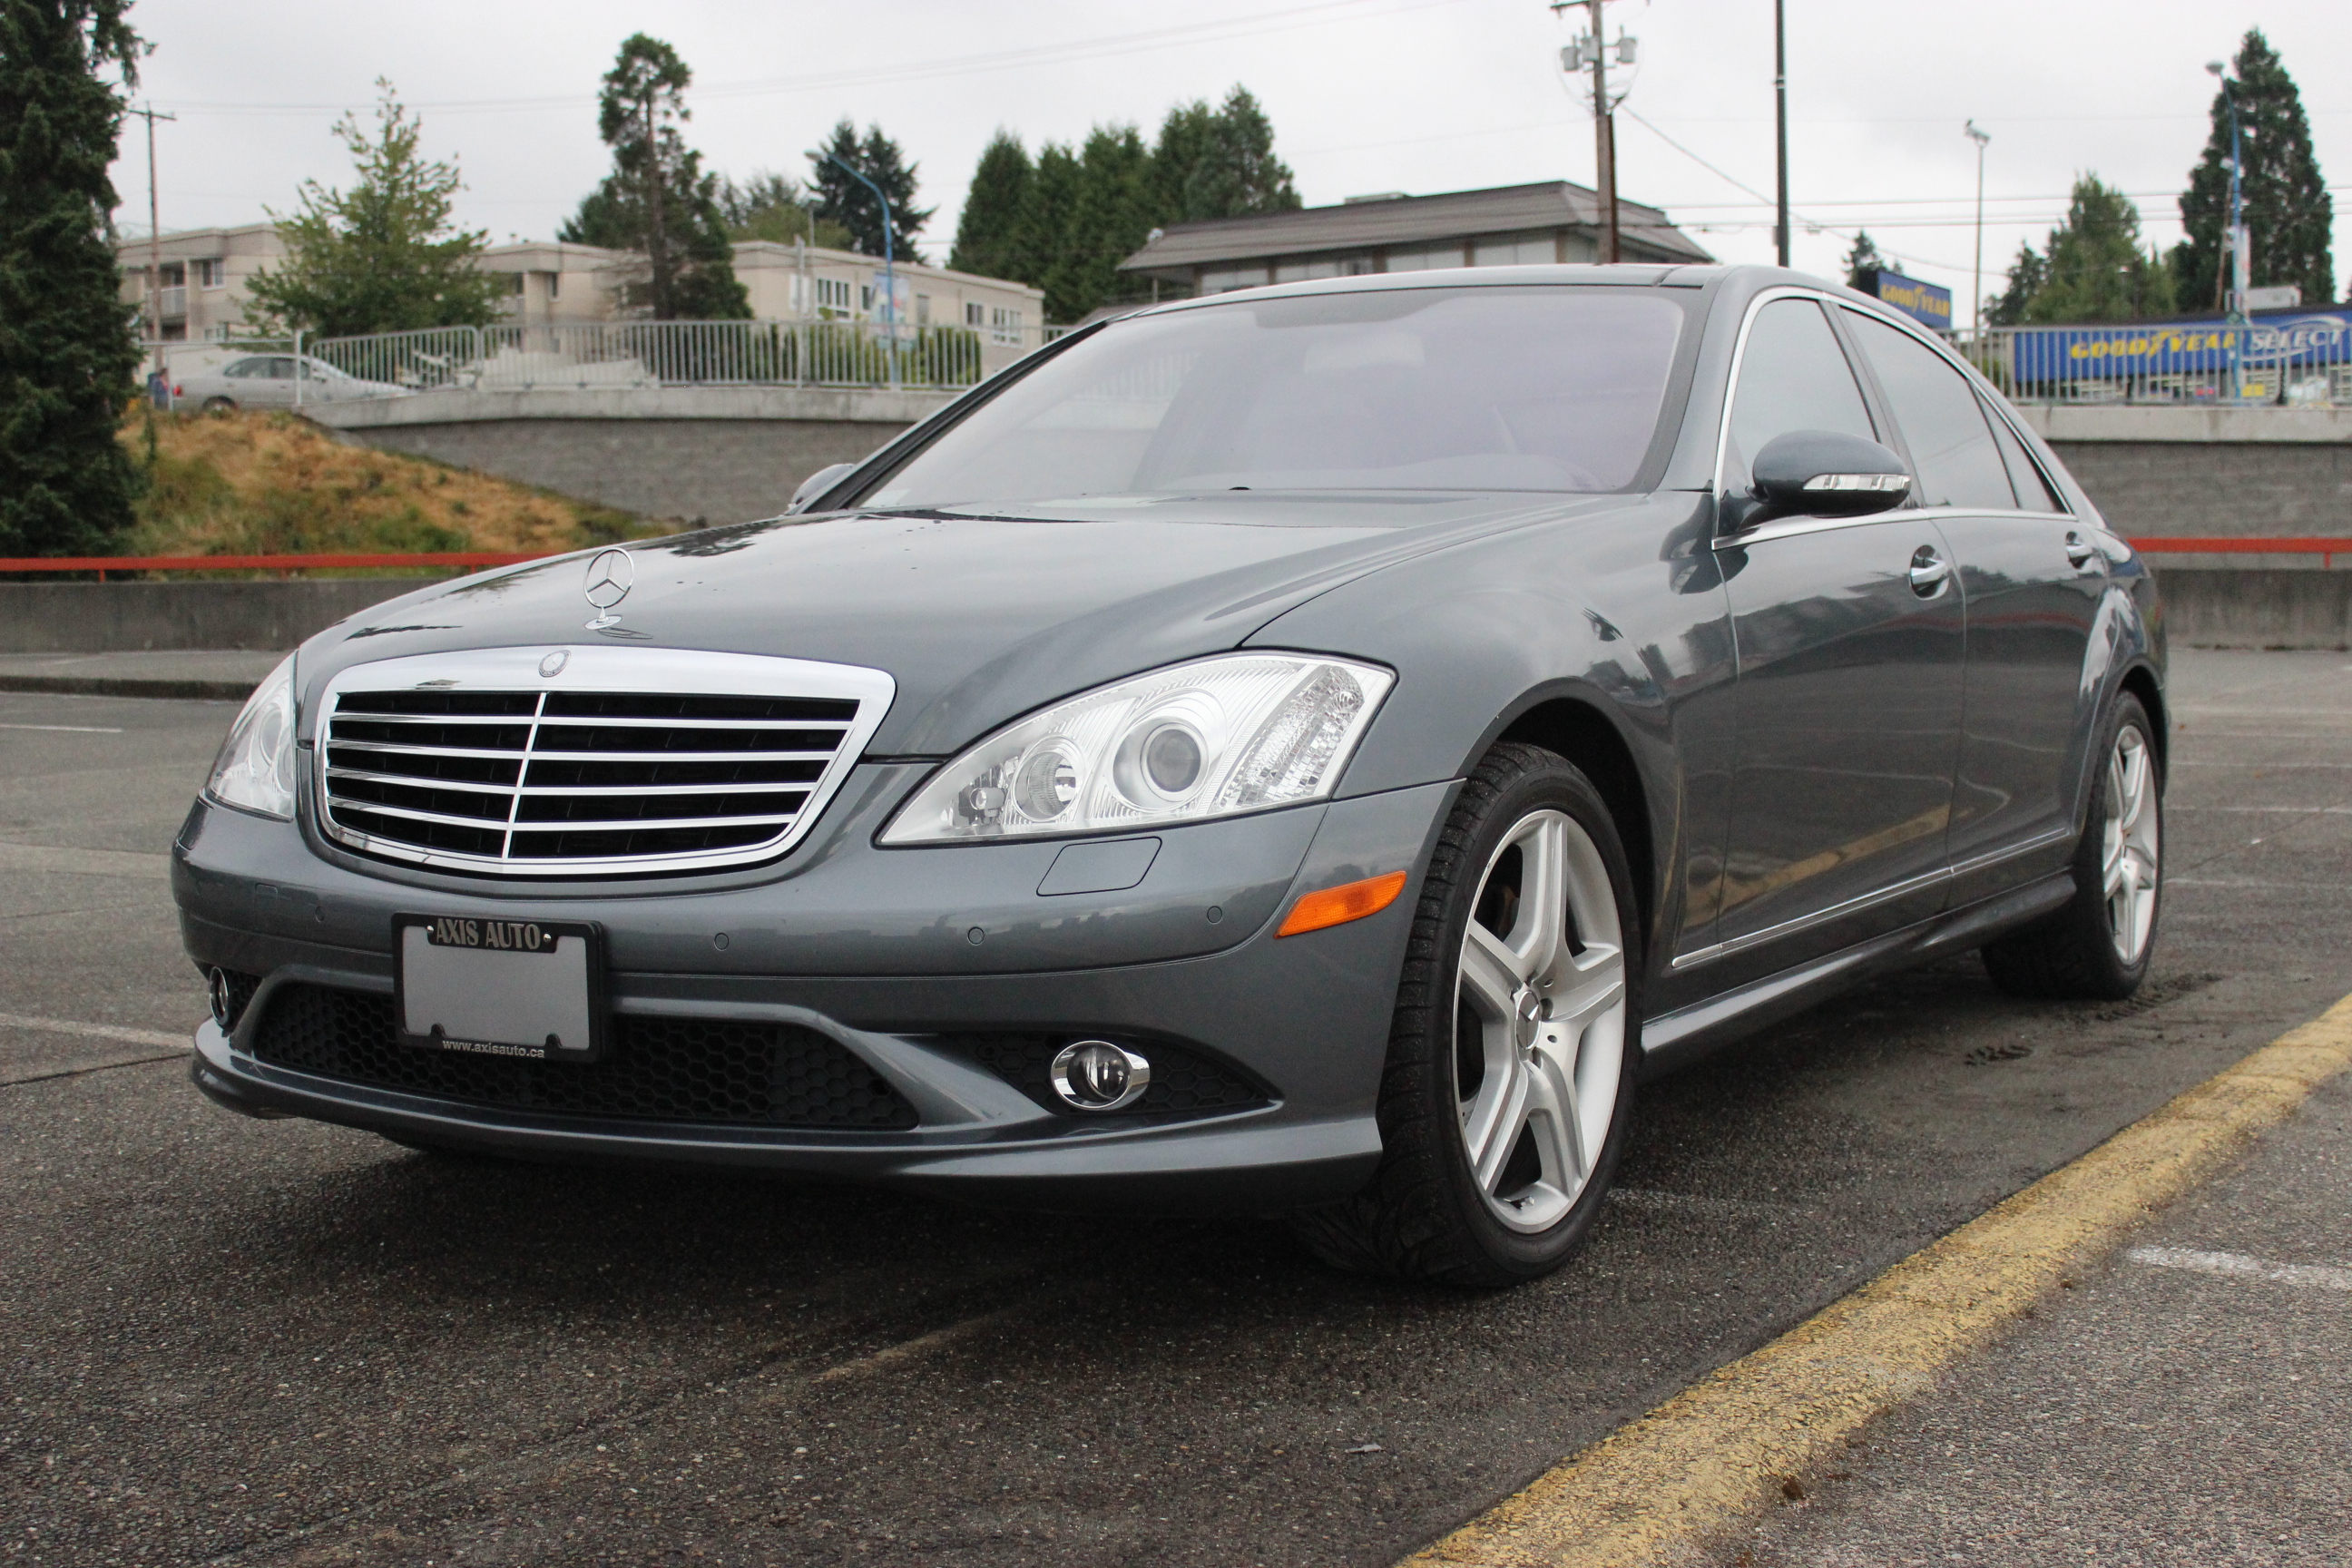 2007 mercedes benz s550 axis auto for Mercedes benz s550 2007